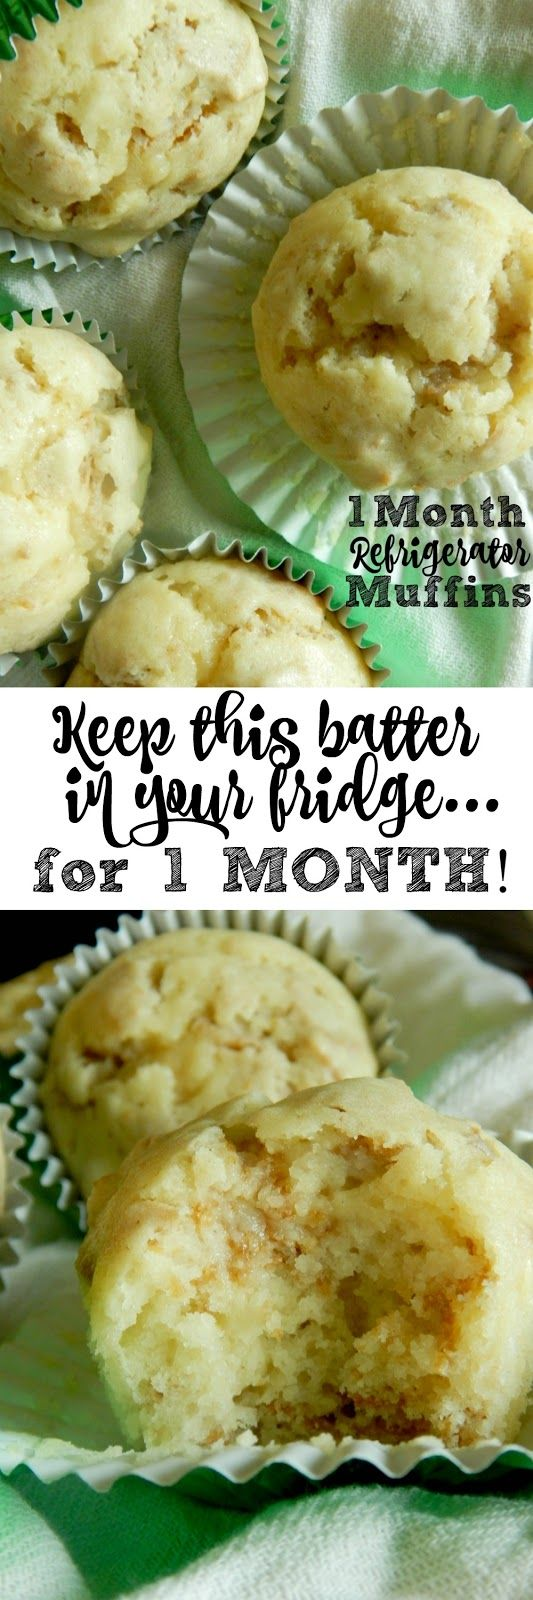 1 Month Refrigerator Muffins...this batter can stay in the fridge for up to one month!  Tangy, sweet and so incredibly soft, the best muffin I've made to date!